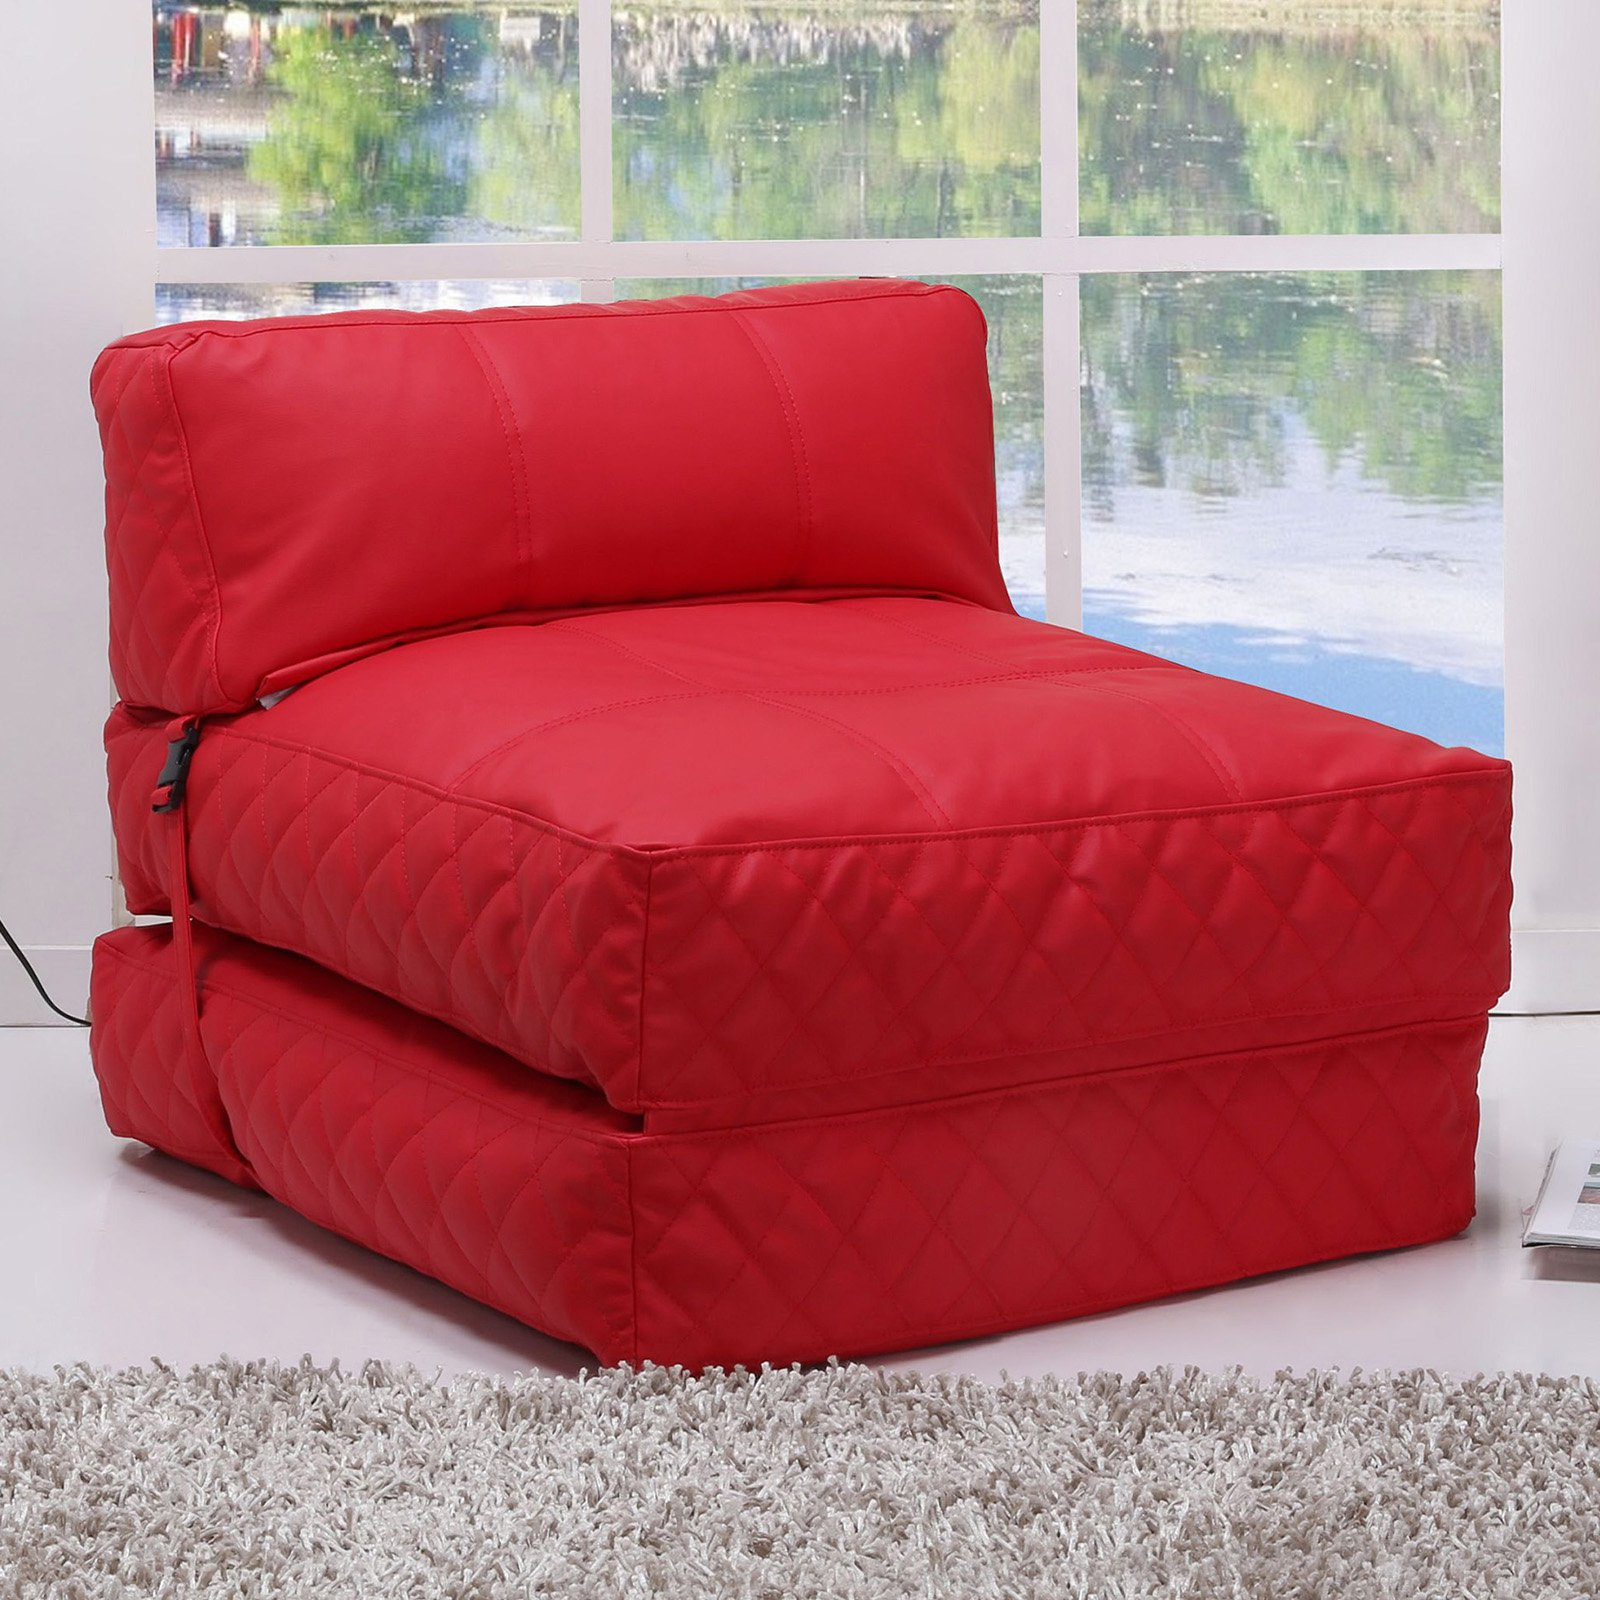 OTHER Gold Sparrow Austin Bean Bag Chair Bed Red - ADC-AUS-BCB-PUX-RED